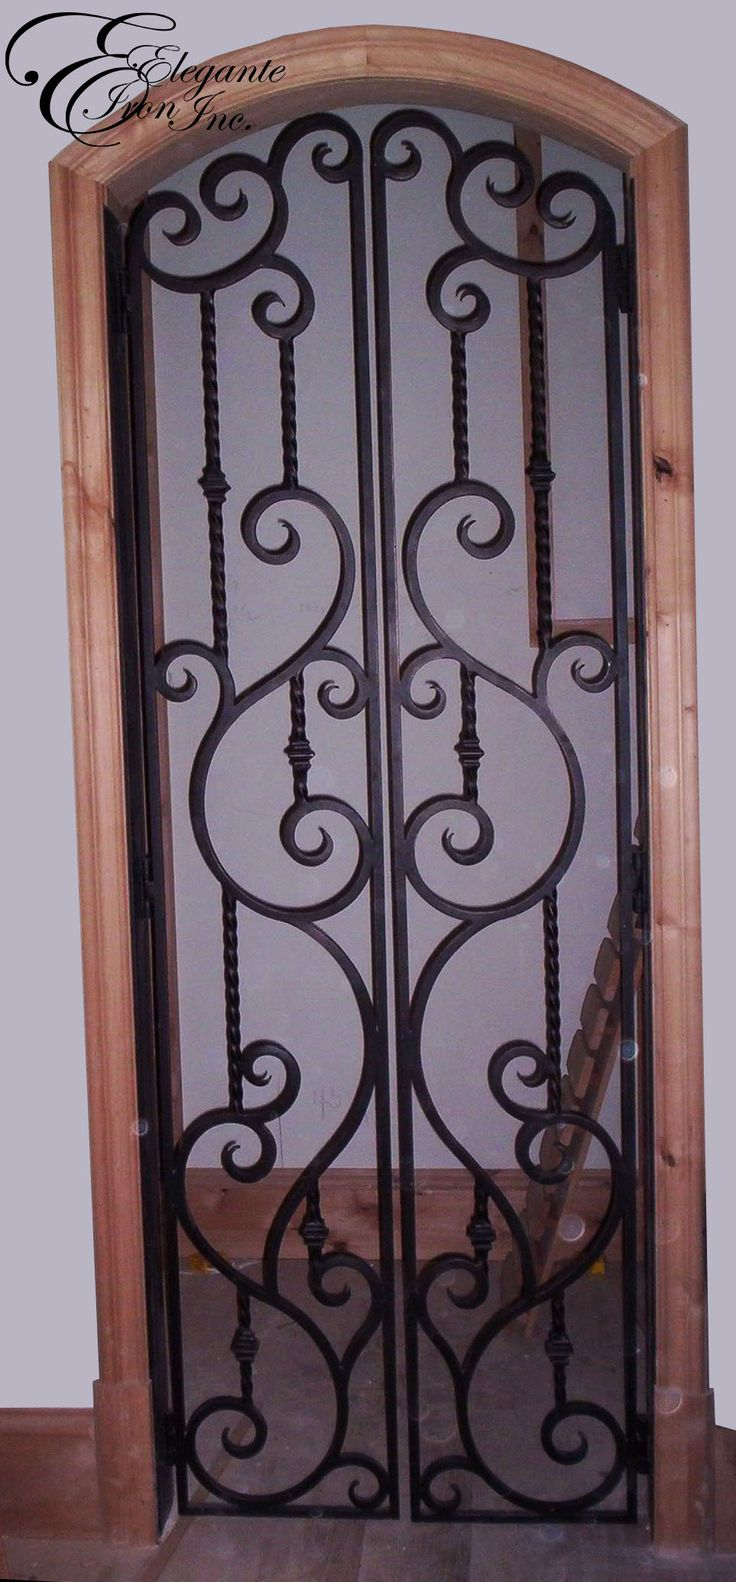 39 best images about wine doors and other elegante iron interior doors on pinterest arches - Wrought iron indoor decor classy elegance ...